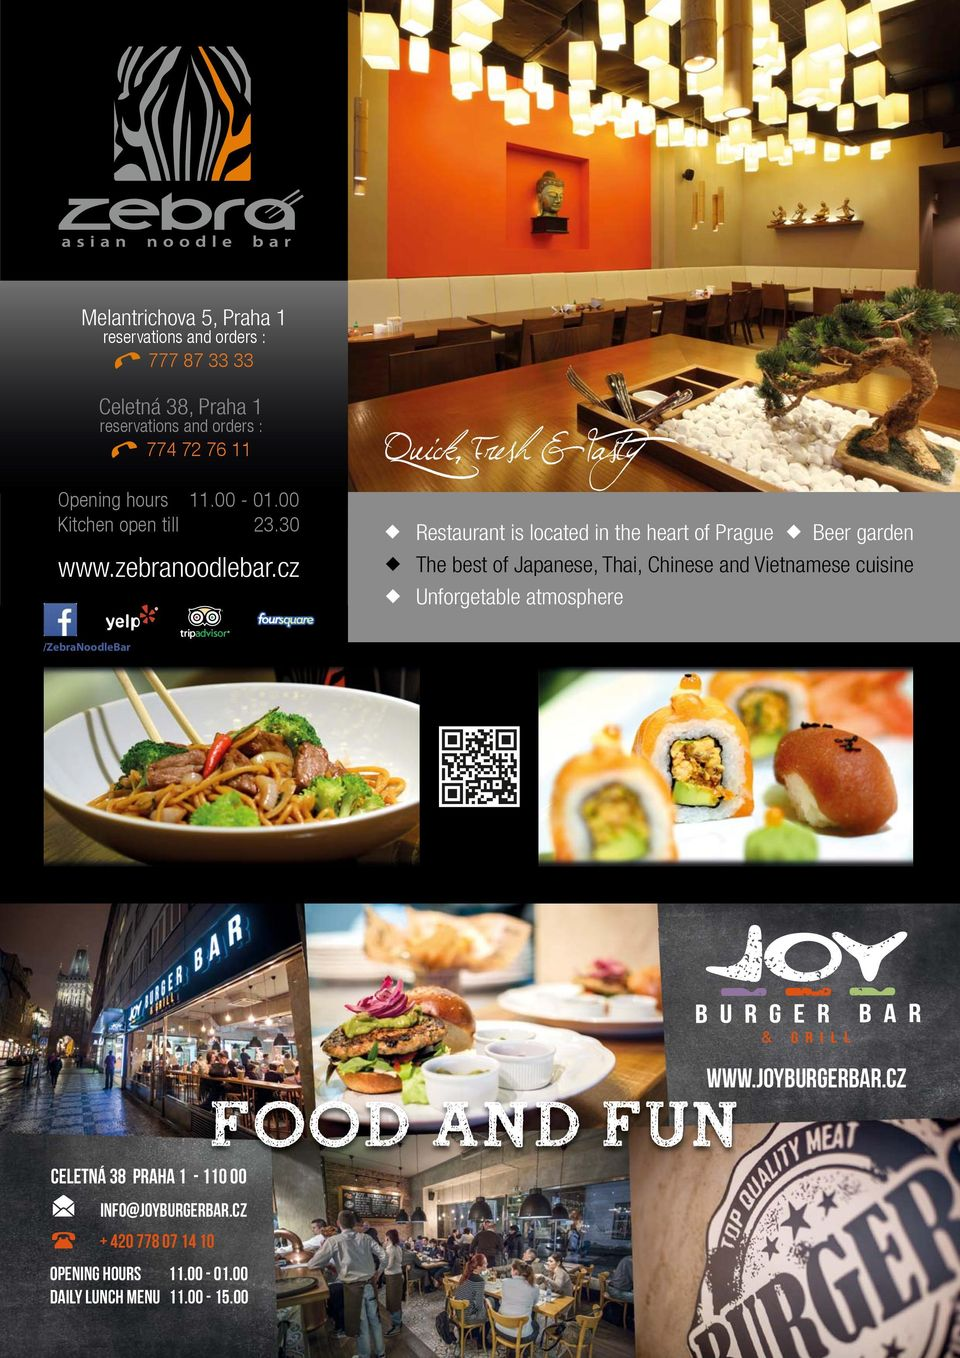 cz Restaurant is located in the heart of Prague Beer garden The best of Japanese, Thai, Chinese and Vietnamese cuisine